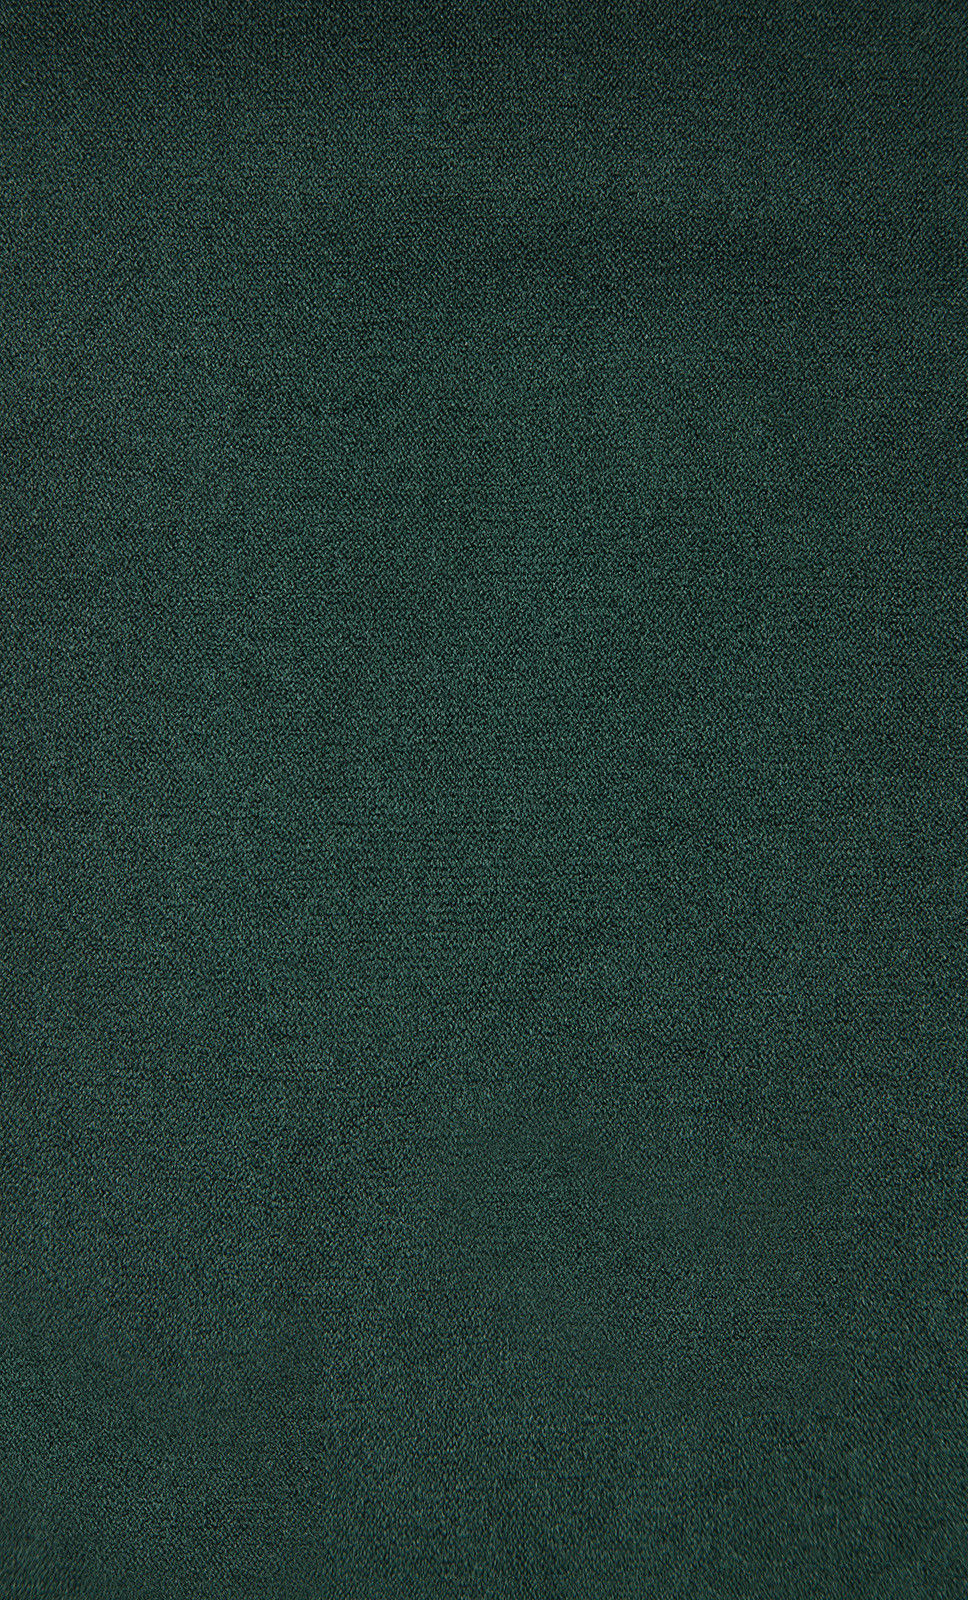 Solid-Sycamore-Green